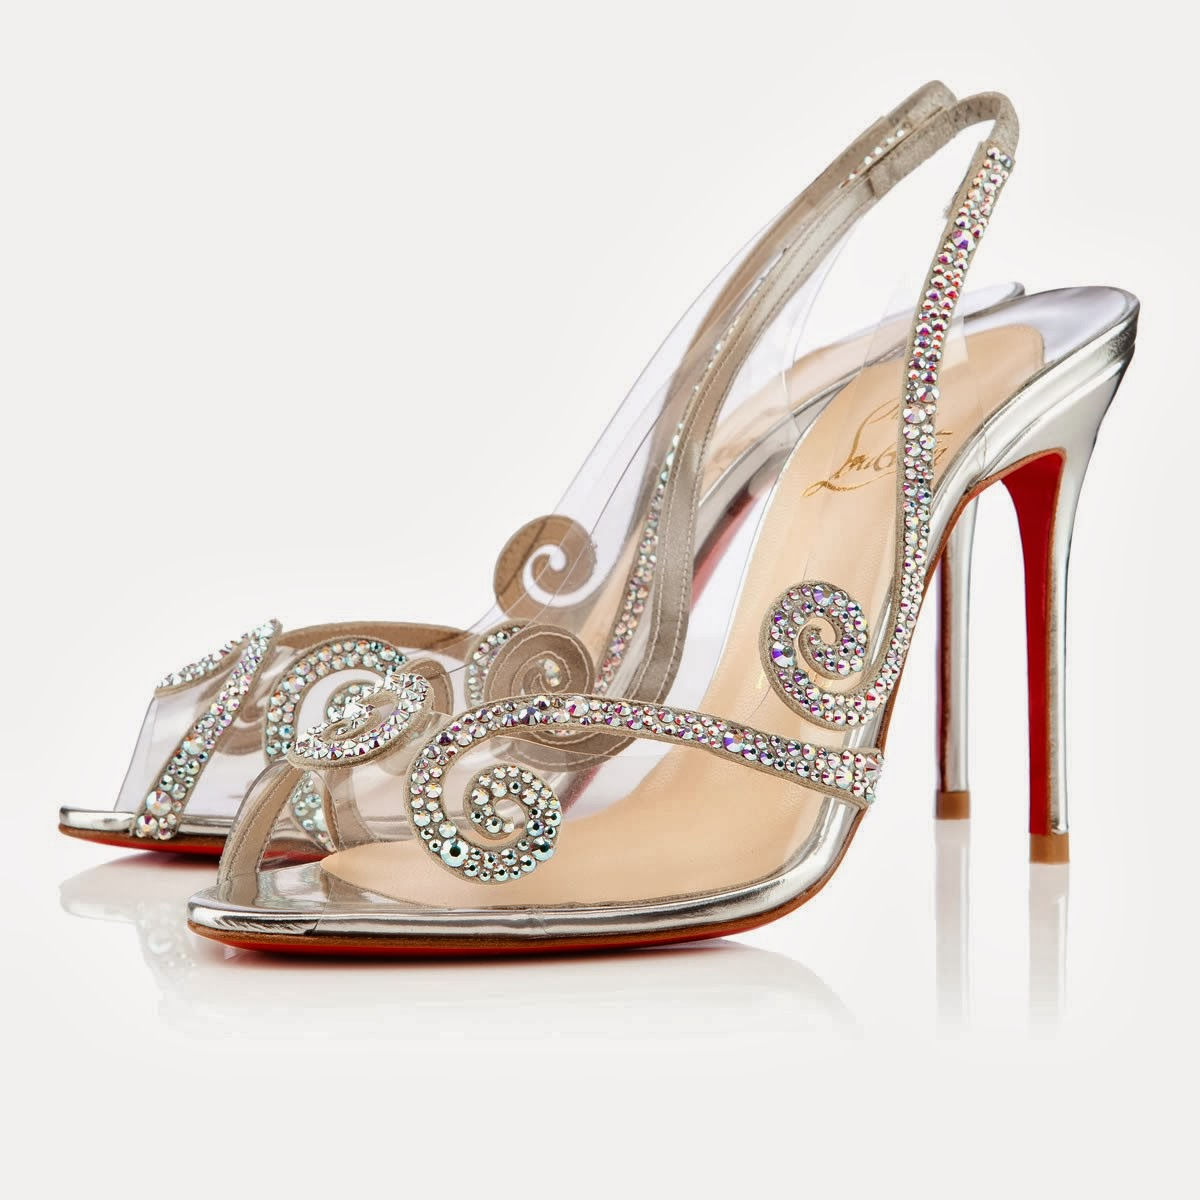 where to buy christian louboutin shoes in the uk - Obsidian . 741c9a148a